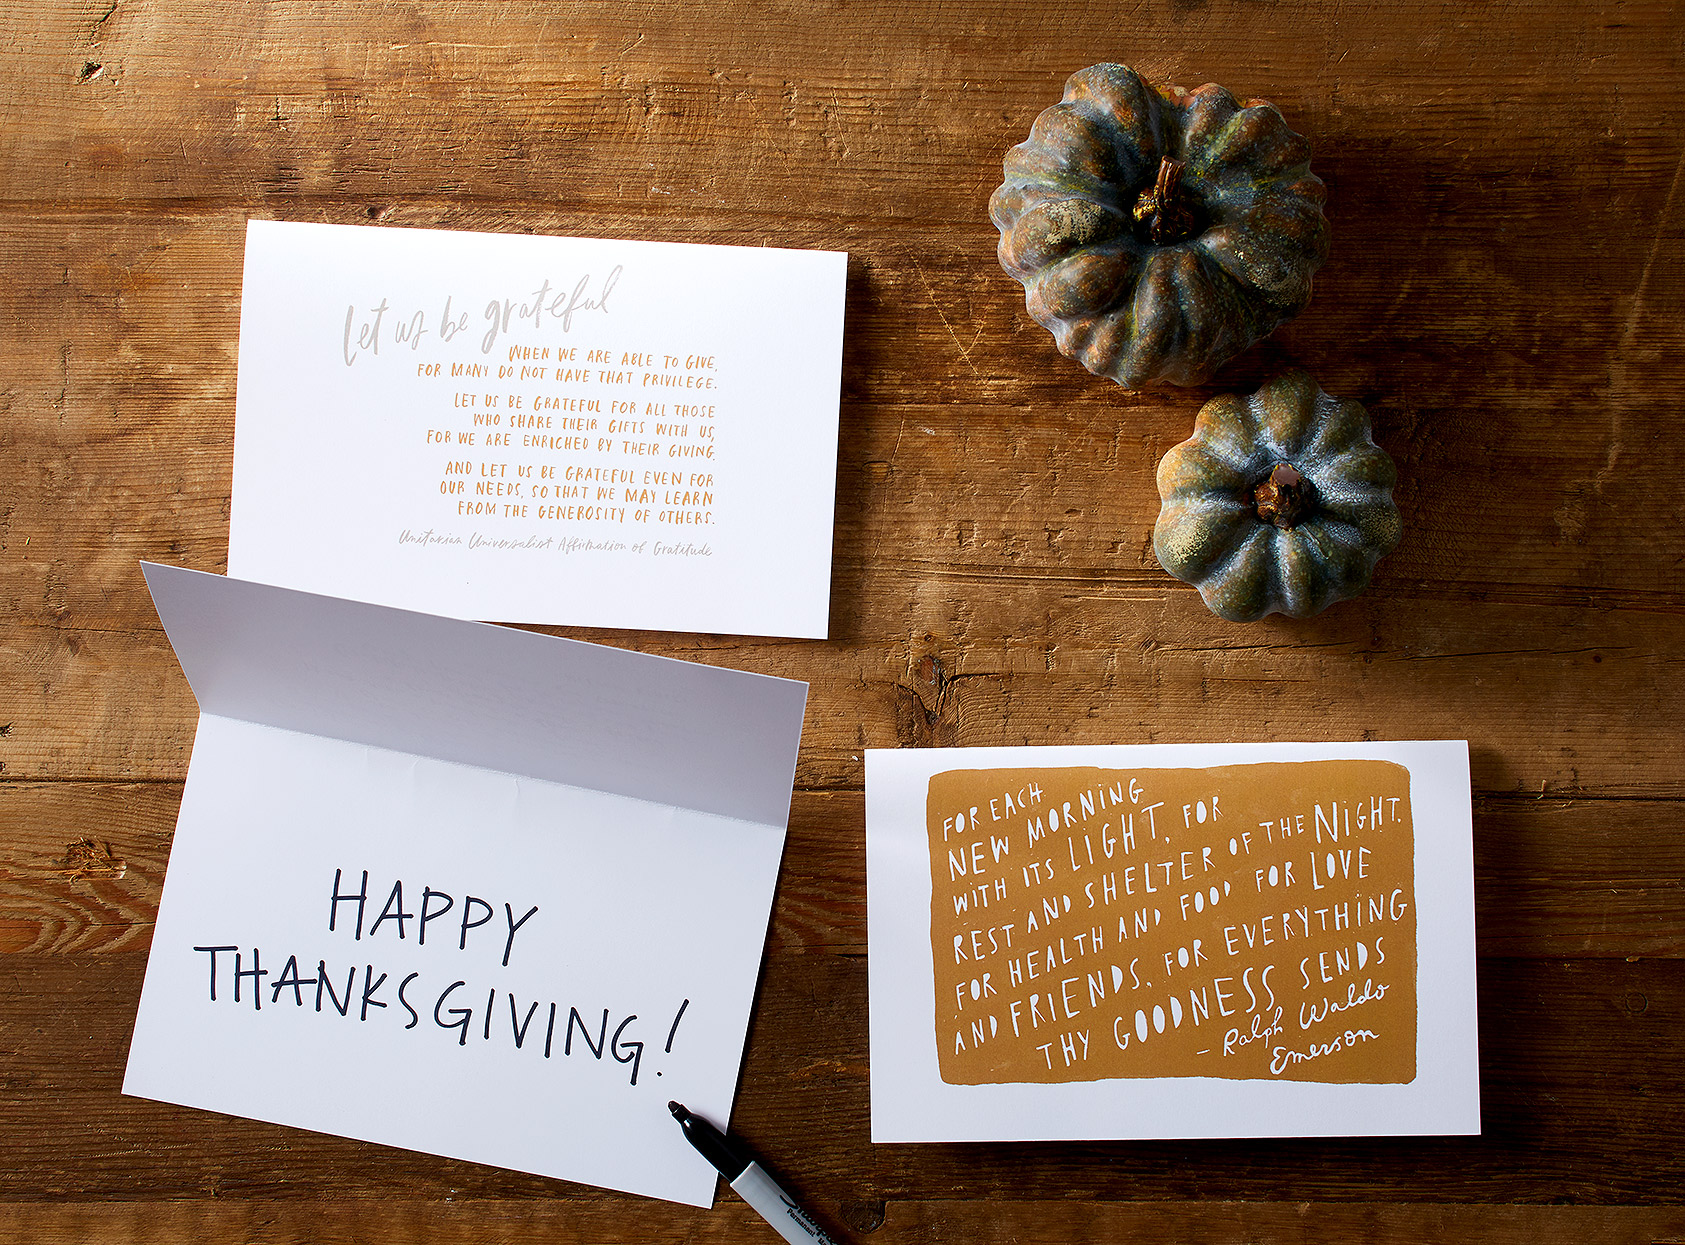 printable Thanksgiving cards on table near gourds